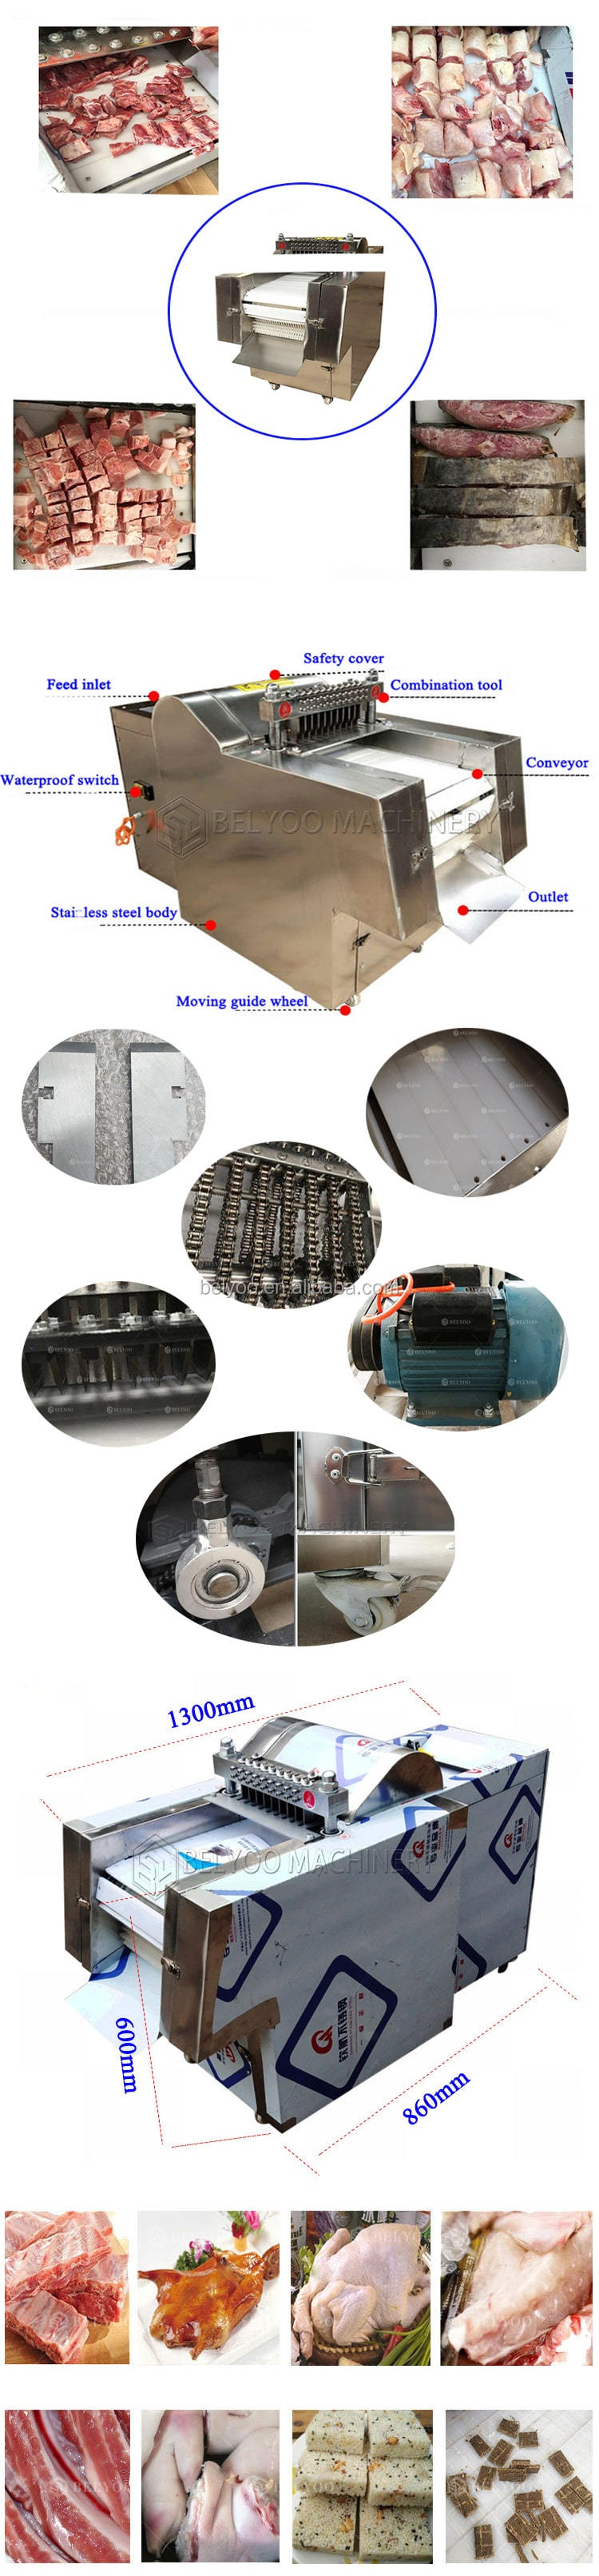 Commercial beef goat pork chicken meat cutting slicing machine